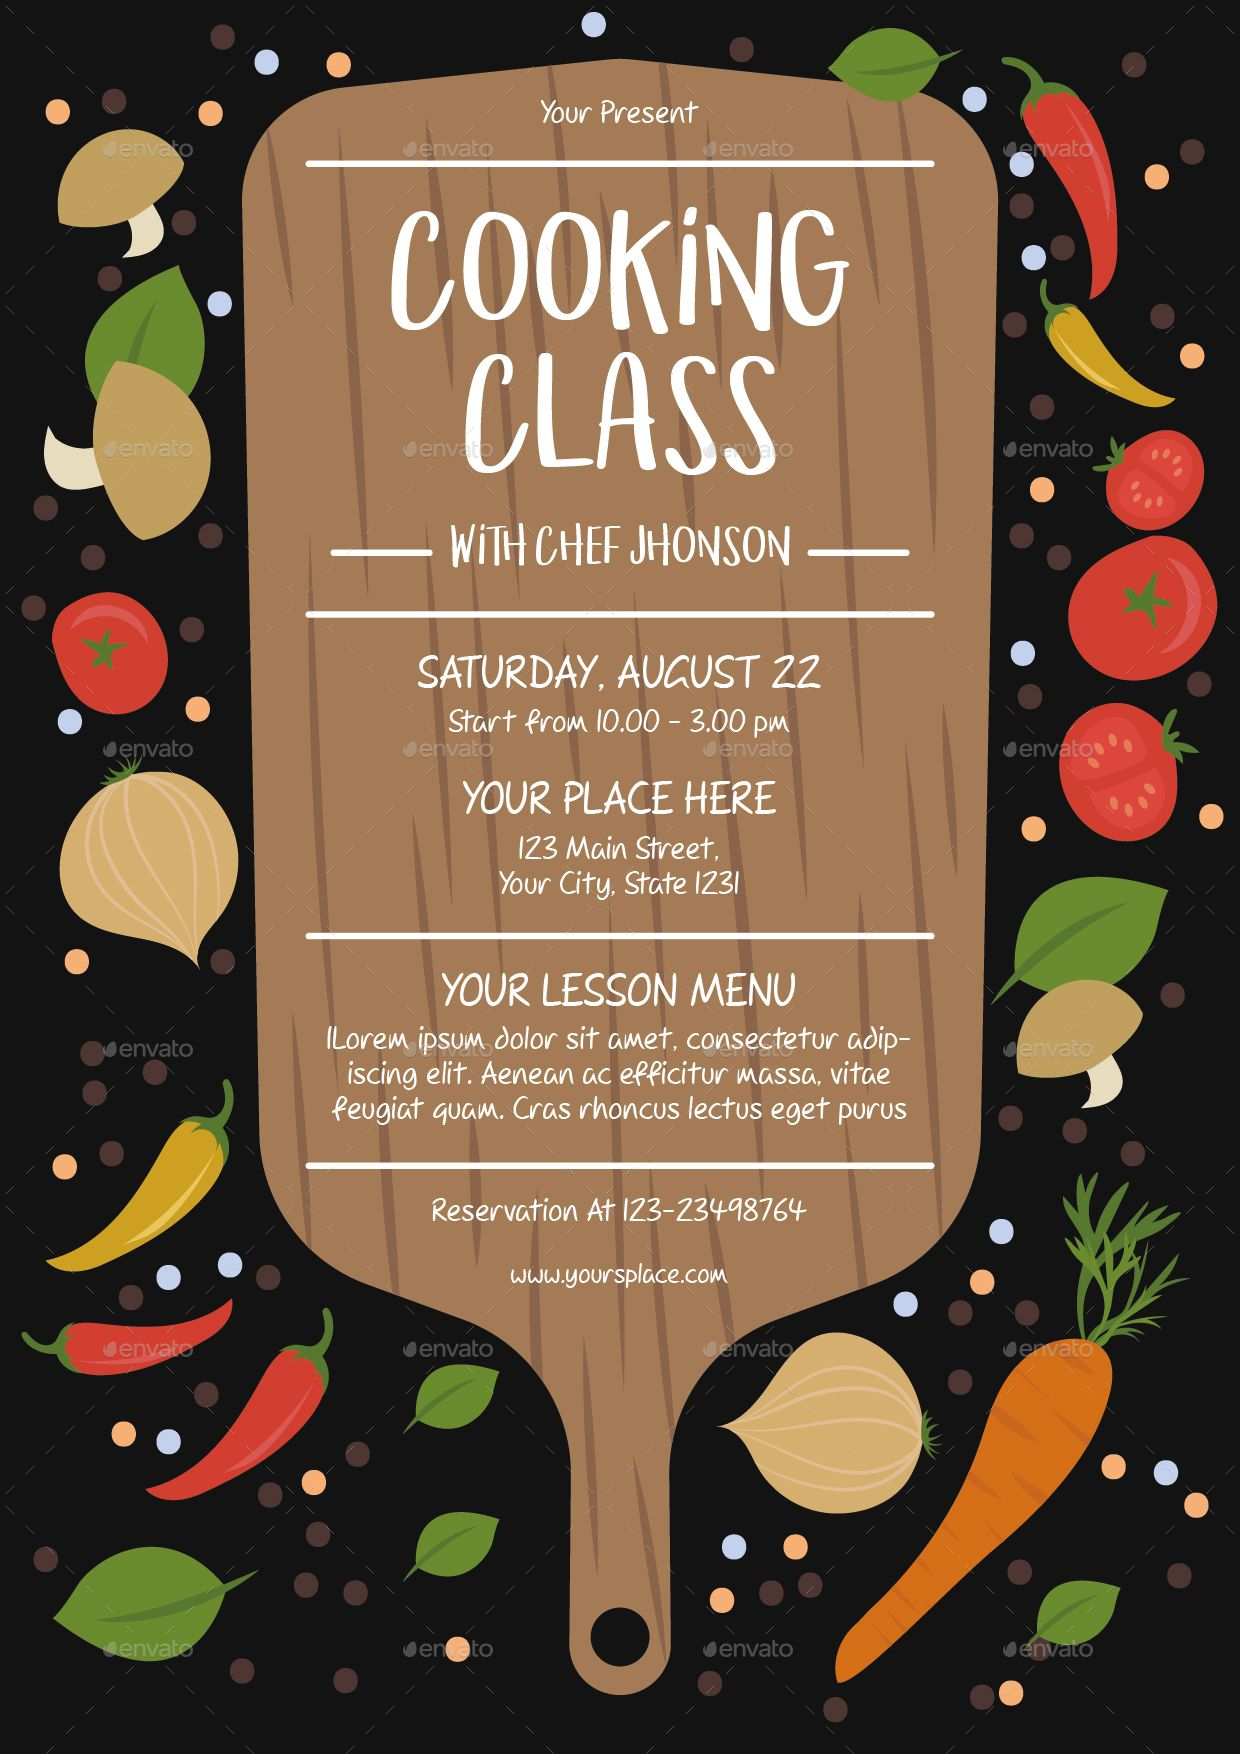 cooking class flyer template diy and crafts pinterest cooking